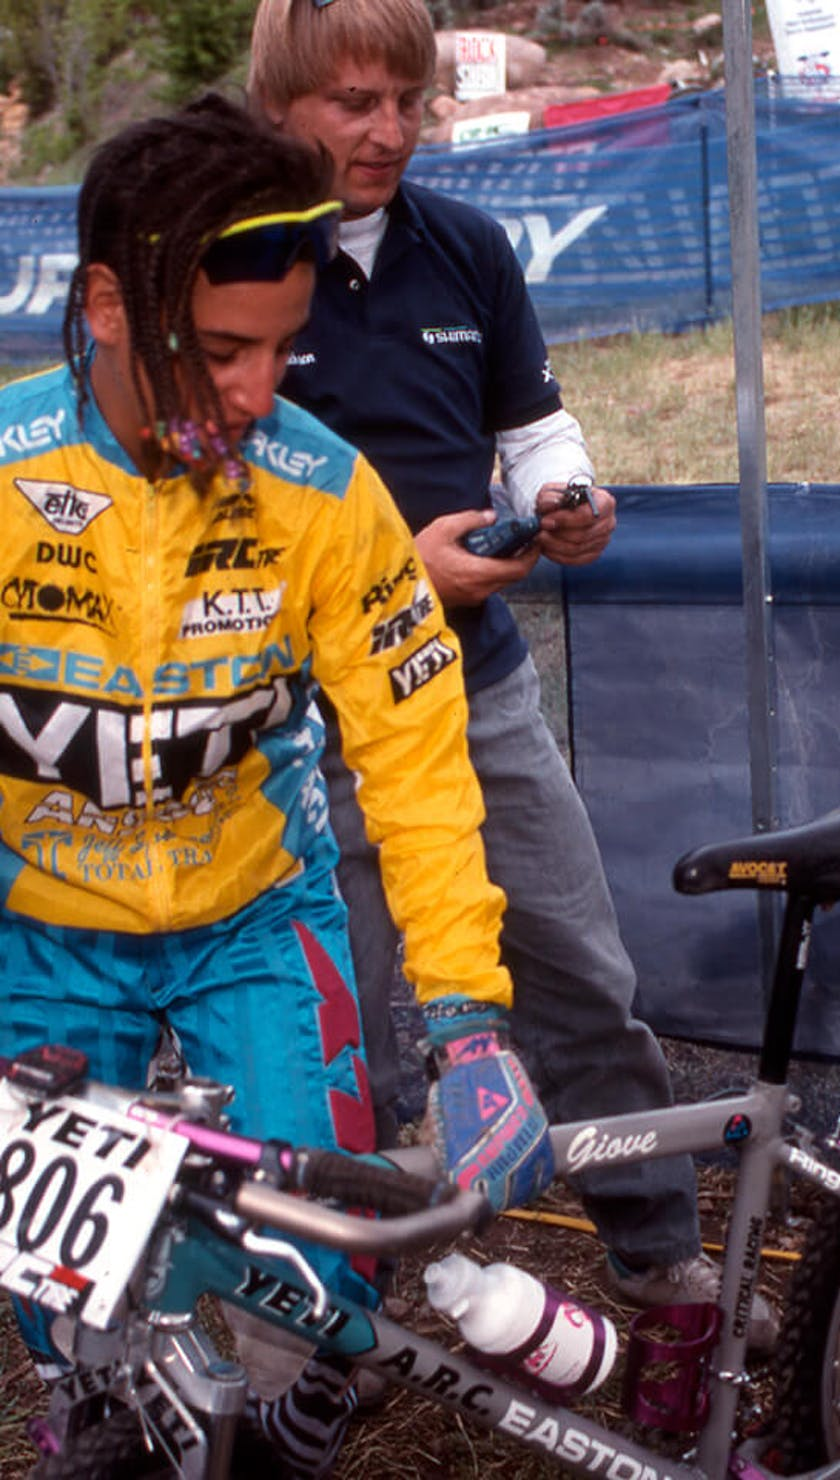 1992 Missy Giove in the pits